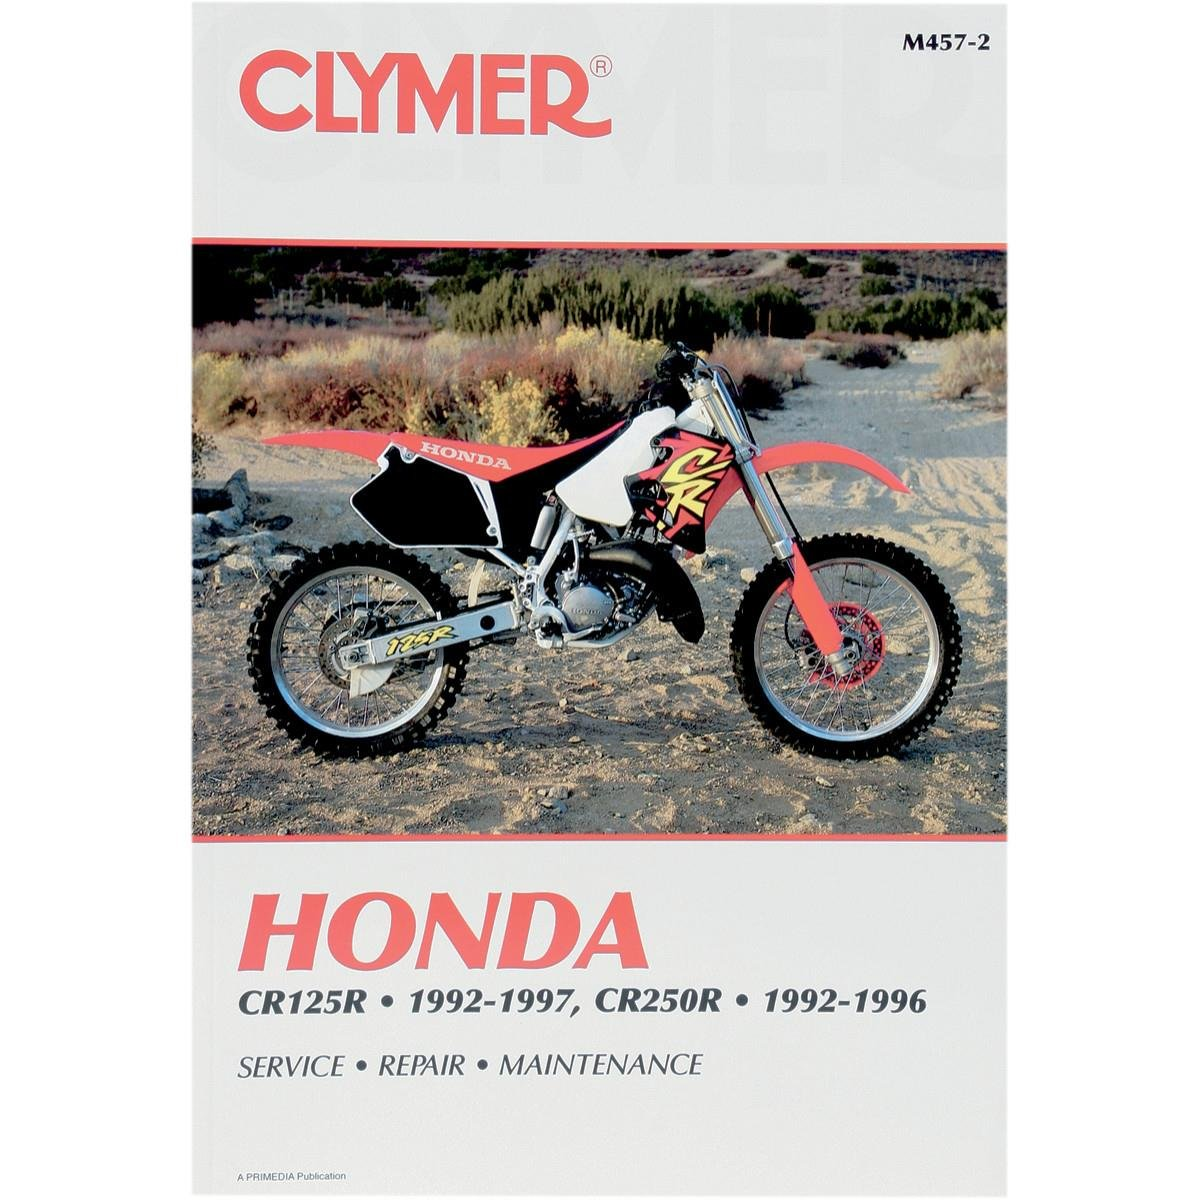 Amazon.com: Clymer Repair Manual for Honda CR125R CR250R 92-97: Automotive